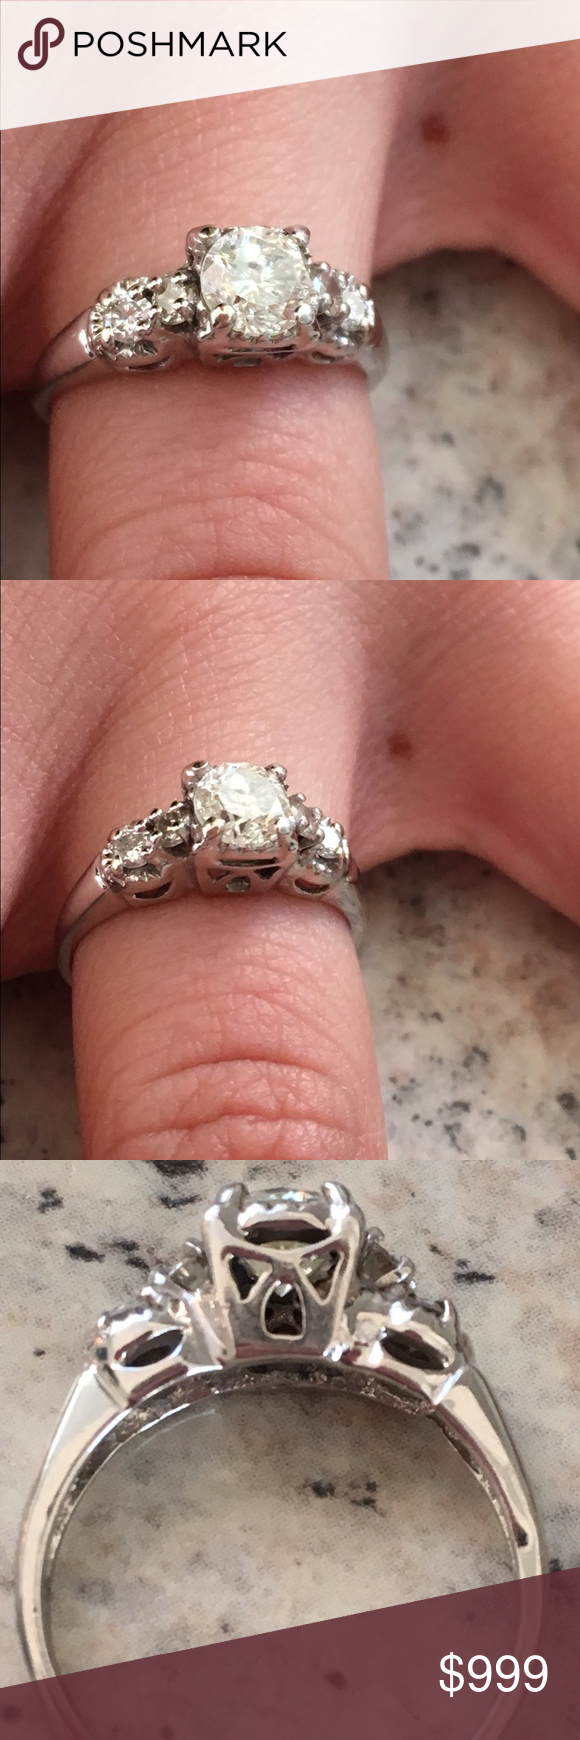 SOLD on CL Beautiful .87ct. Round Cut diamond ring | Round cut ...